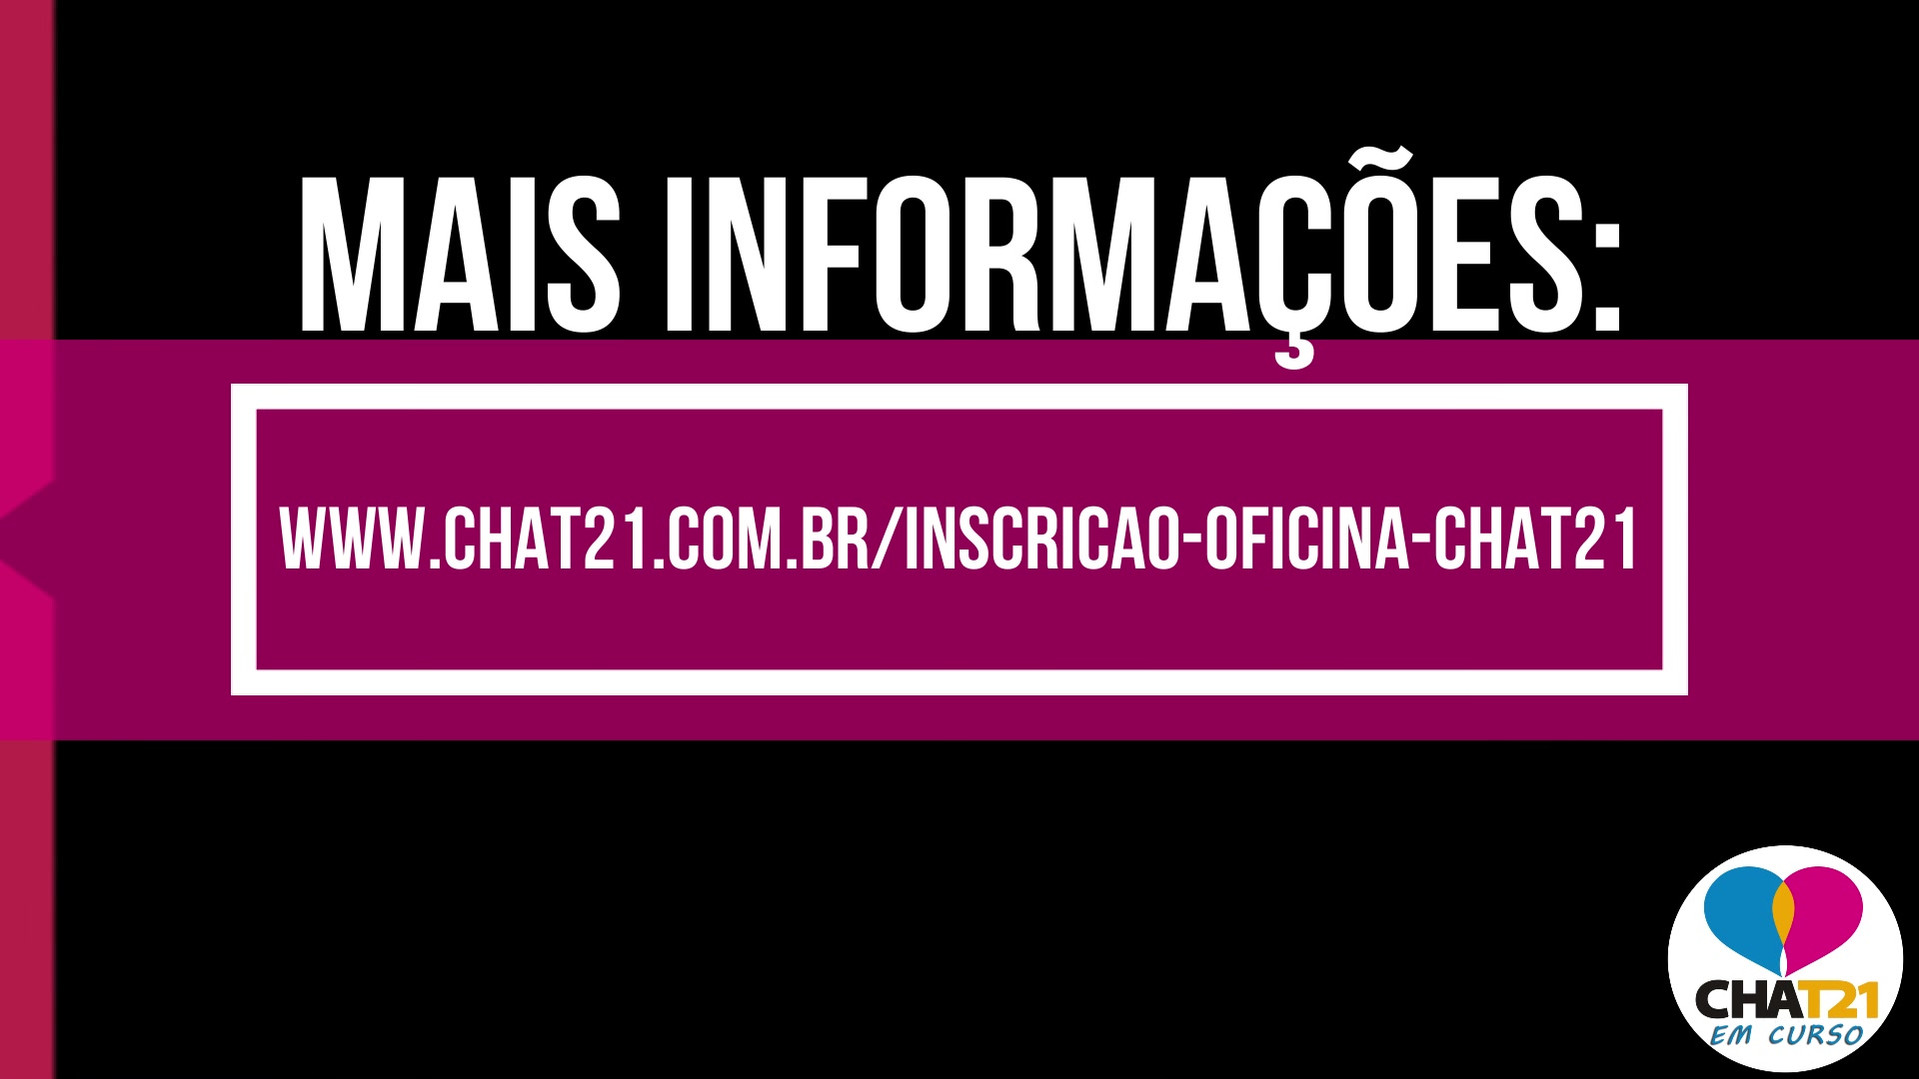 ultimachamada chat21 em curso.mp4